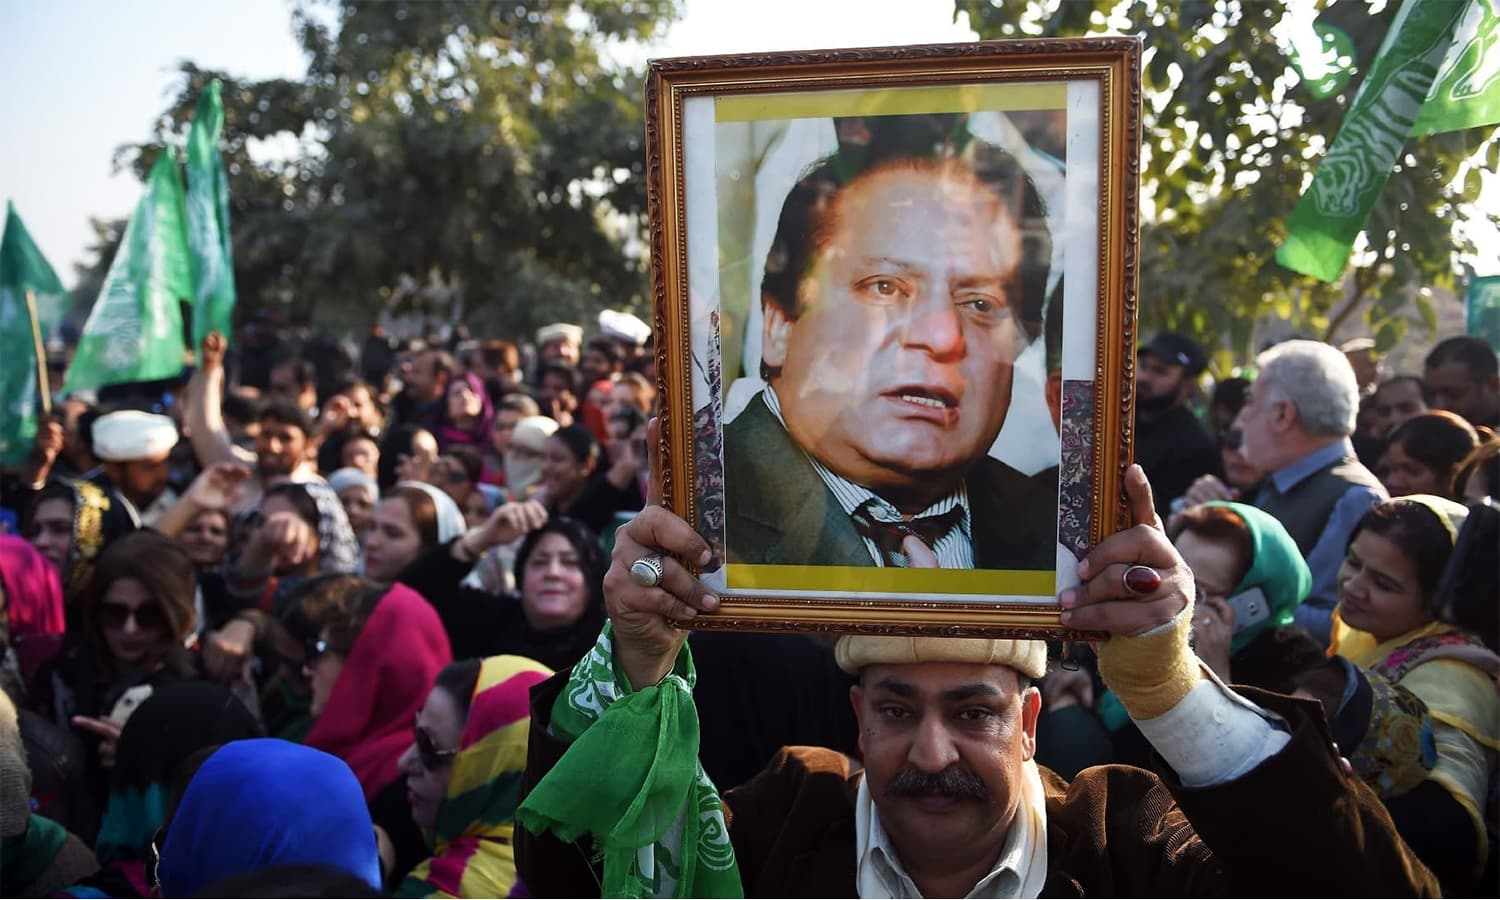 Supporters of Nawaz Sharif gather outside the anti-corruption court in Islamabad ahead of the court verdict in the Al-Azizia reference. — AFP